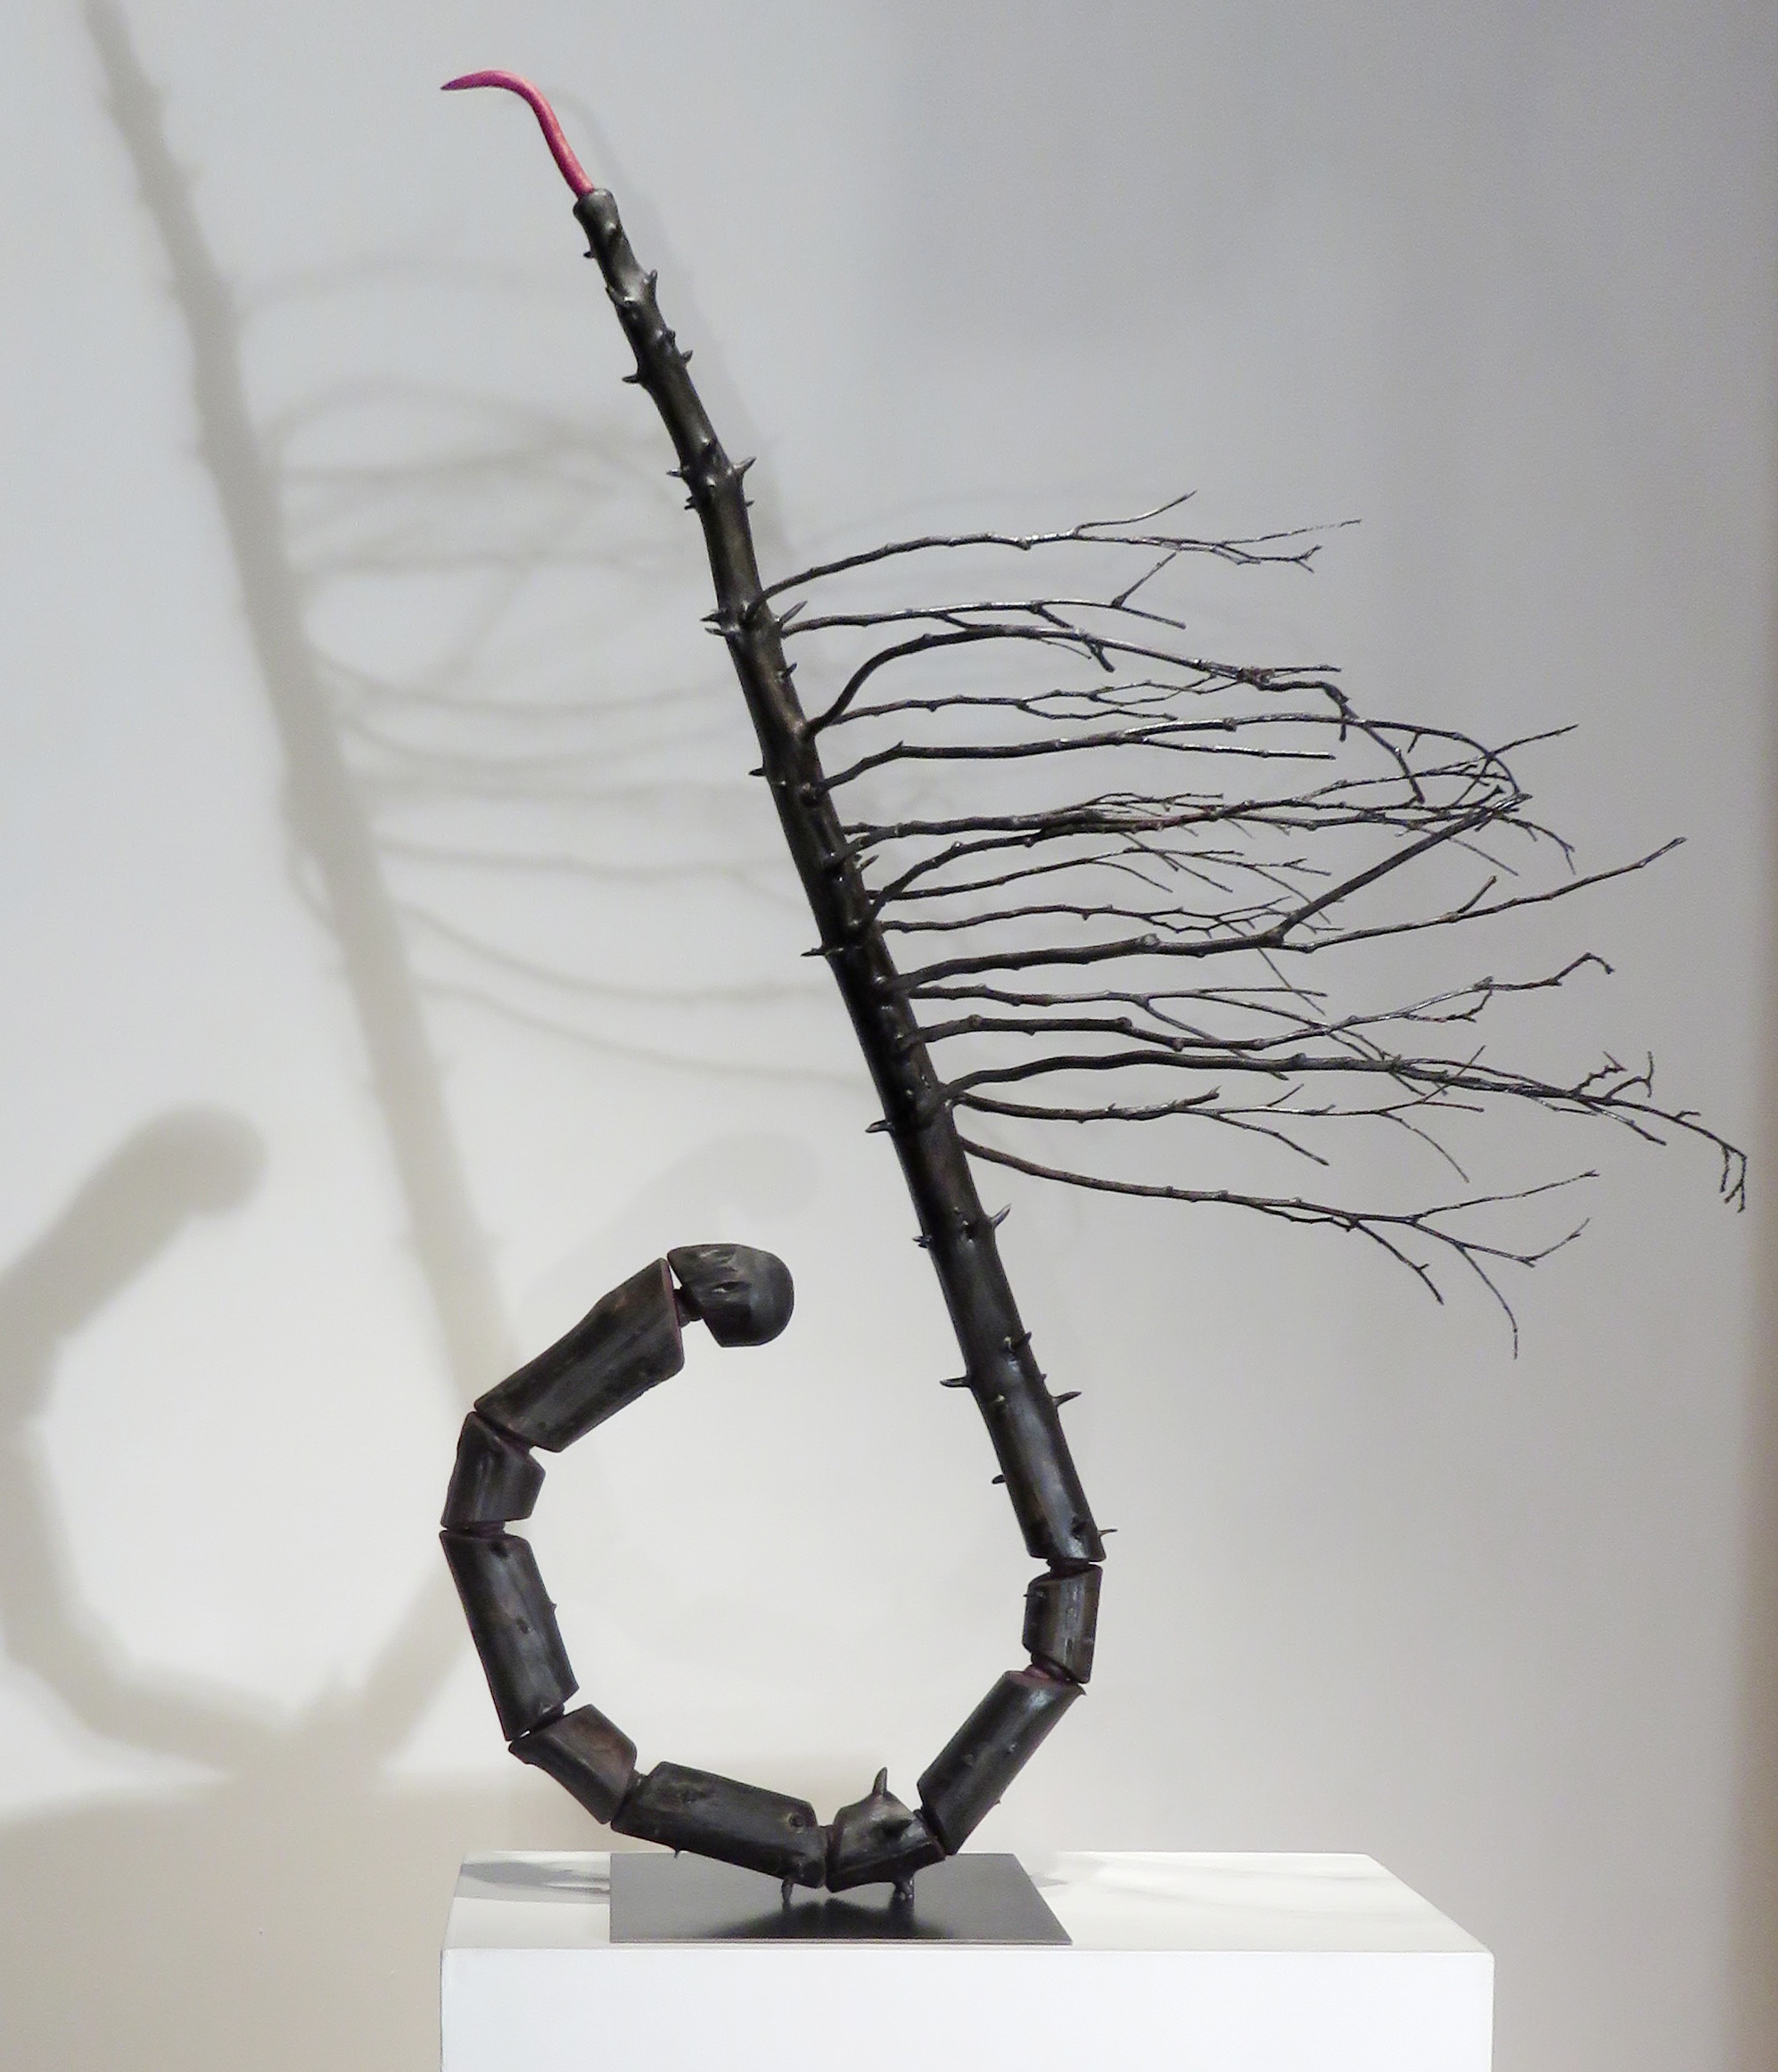 Expectations II,   2016 Spruce tree, cedar branches, foam, acrylic paint, steel base, 50 x 38 x 28 inches